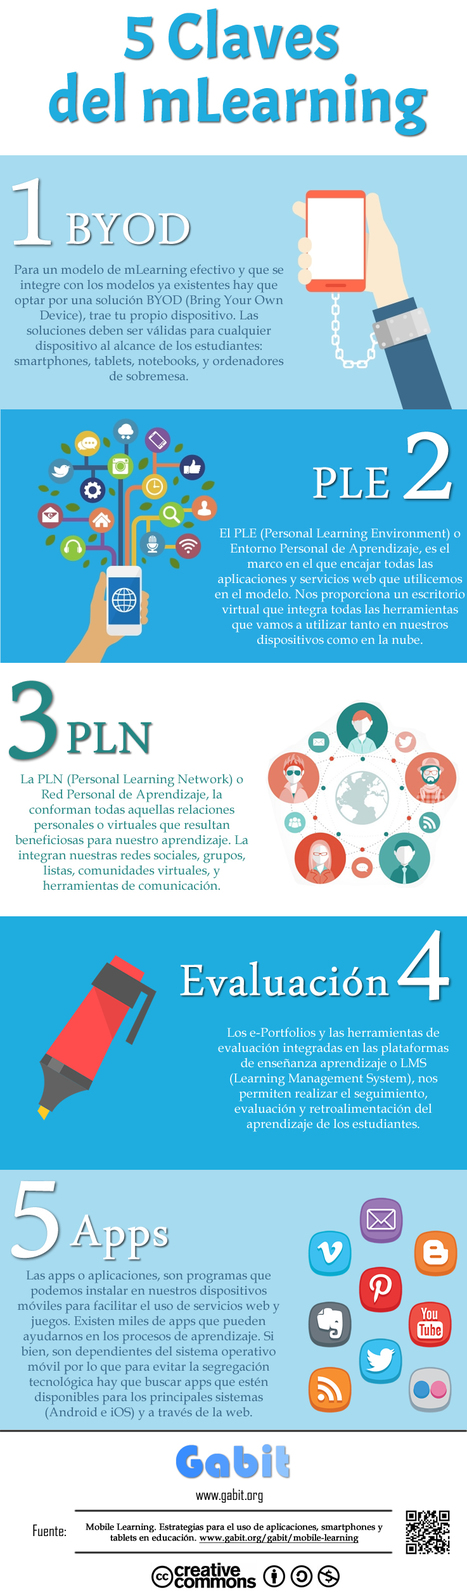 [infografía] 5 claves del mLearning | Francophonie | Scoop.it